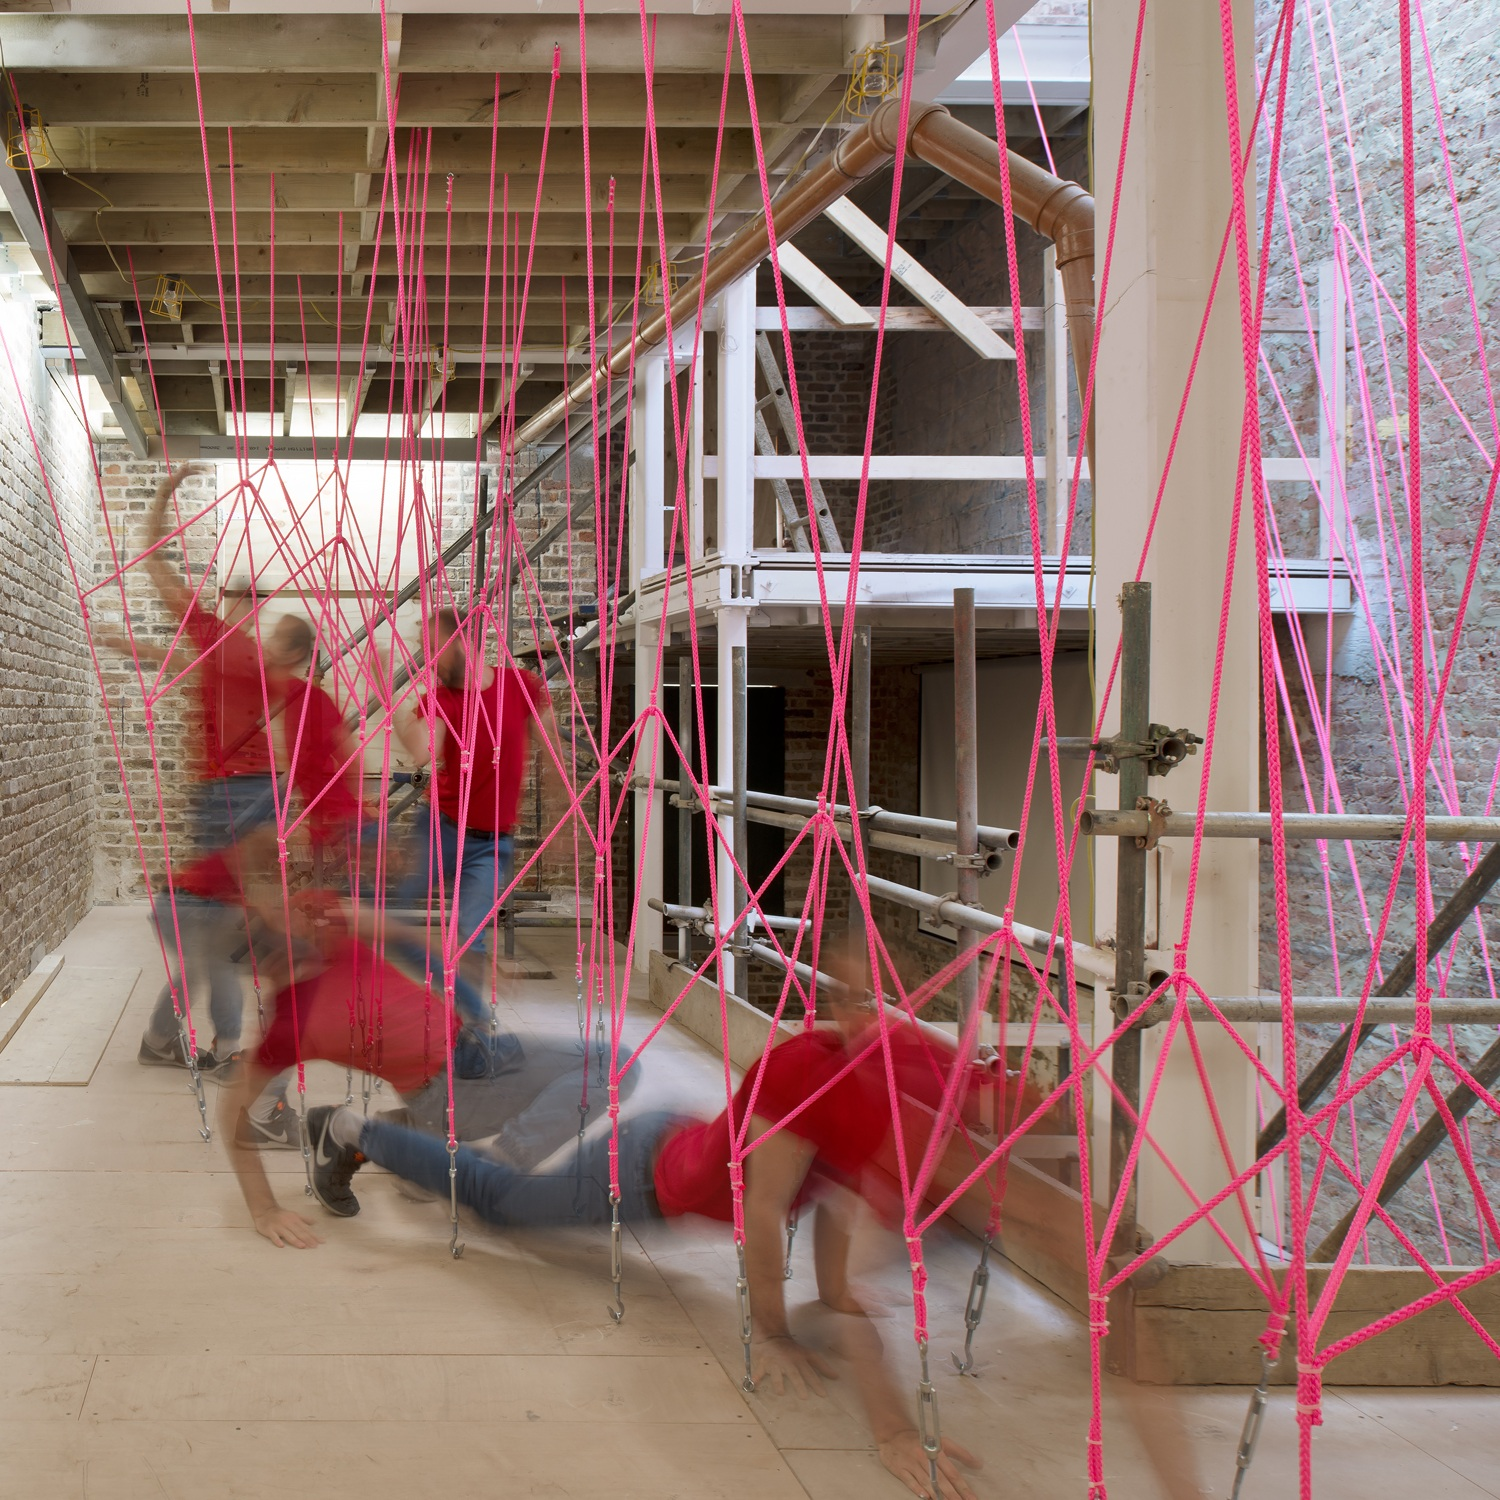 Intertwined+-+Central+London+%E2%80%93+Art+Installation+-+14.jpg